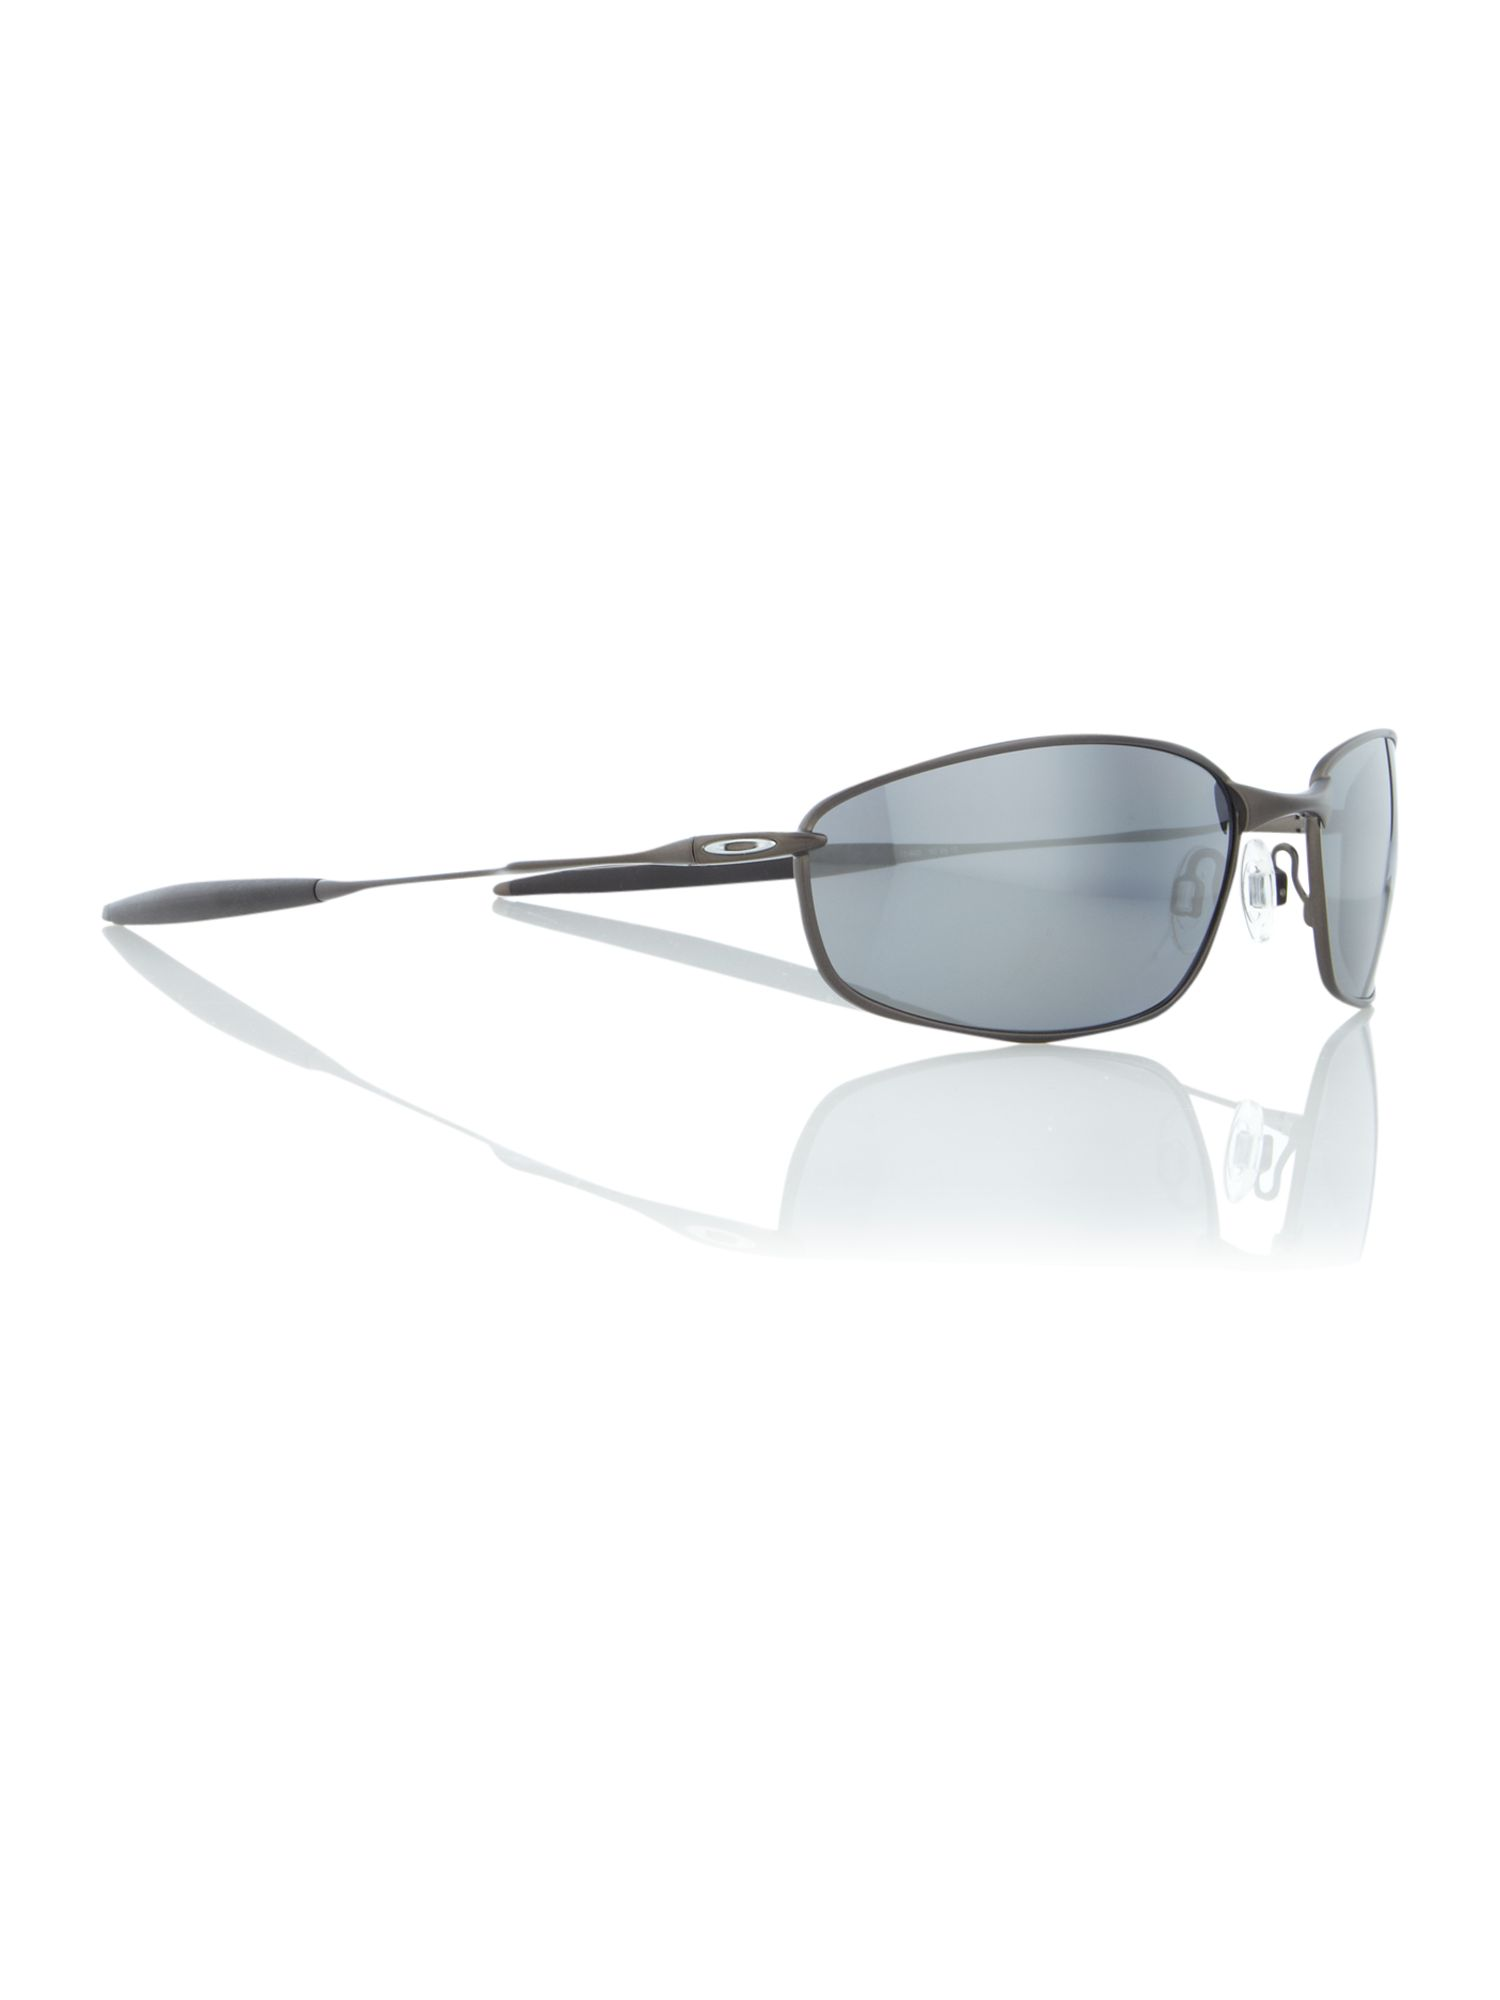 Mens Crosshair 2.0 Sunglasses.